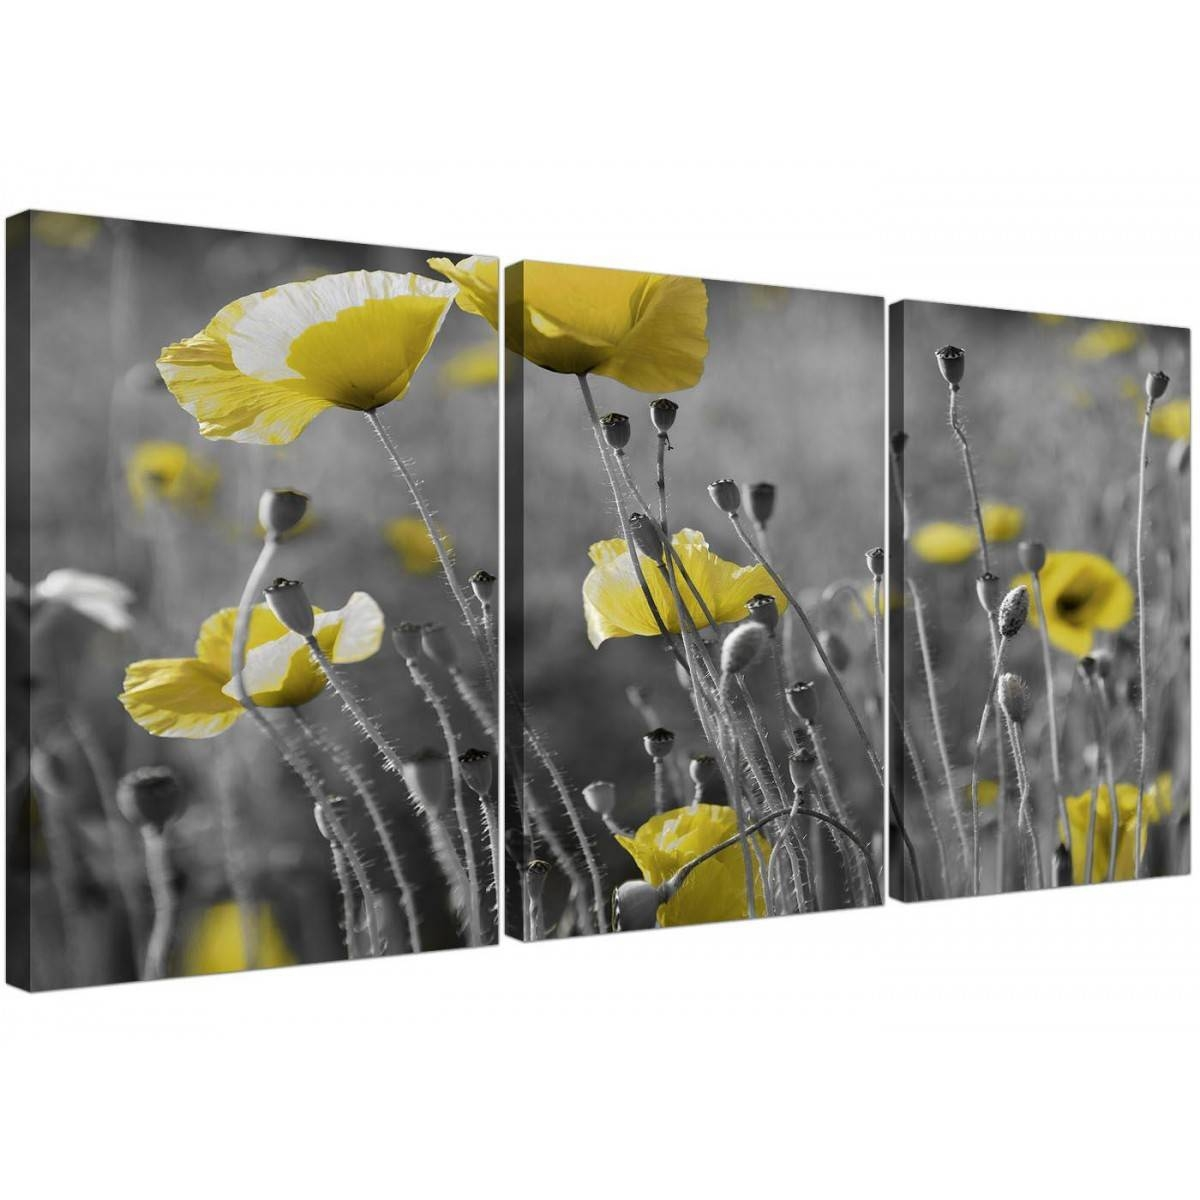 Black And White Canvas With Grey And Yellow Poppies Wall Art For Most Up To Date Gray And Yellow Wall Art (View 6 of 20)